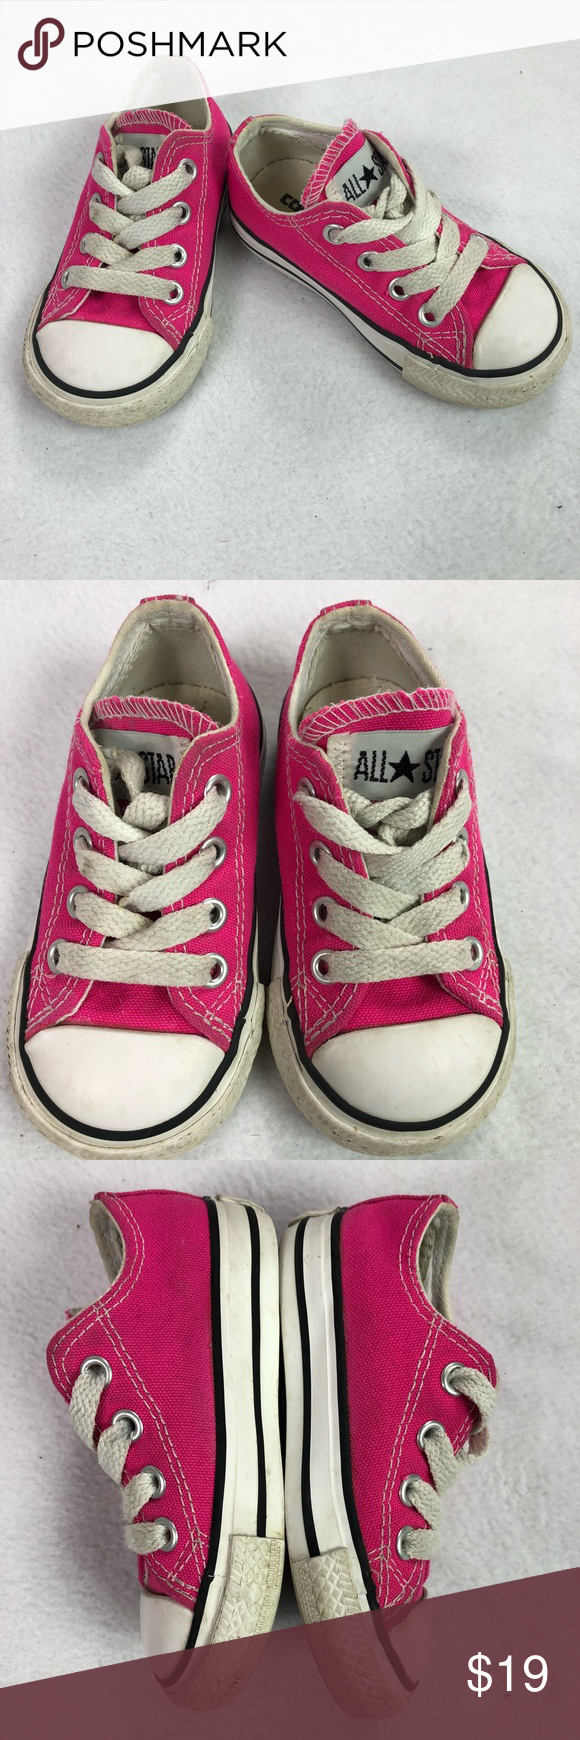 e01571f966b24d Pink Converse All Star Loe Top Shoes toddler Sz 5 Great pair of gently used  infant  toddler chuck Taylor Converse All Star pink shoes size 5 Converse  Shoes ...